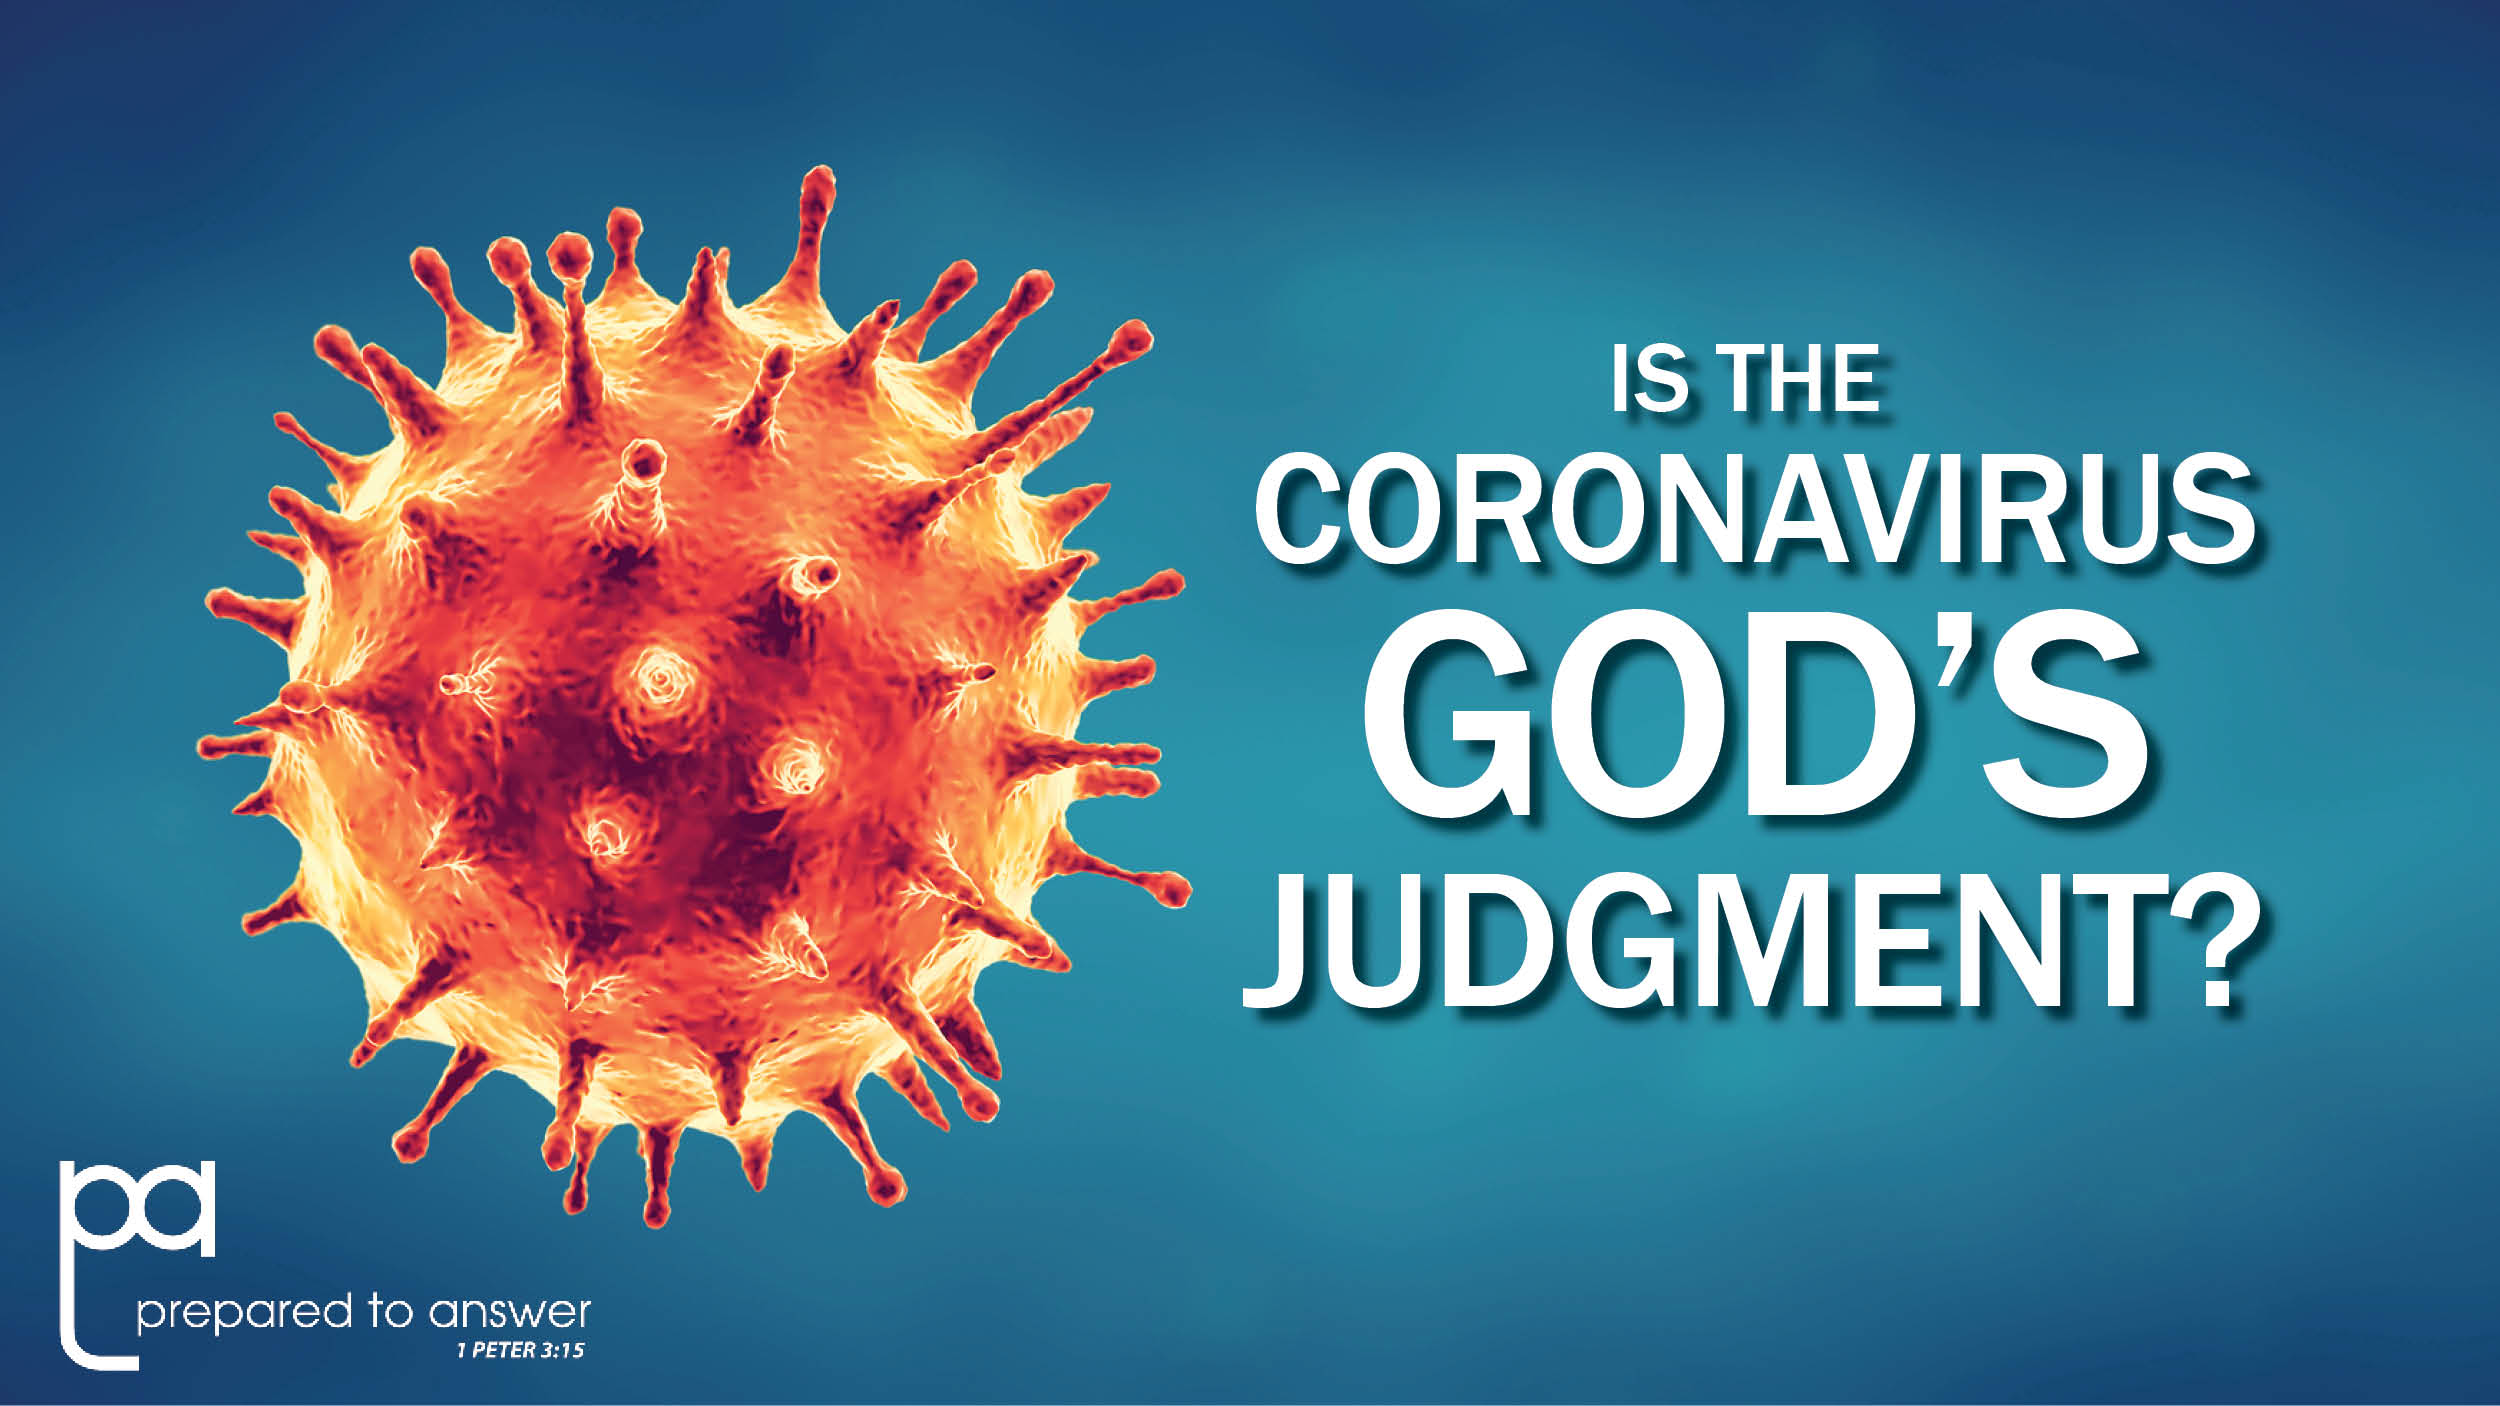 Is the Coronavirus God's Judgment?